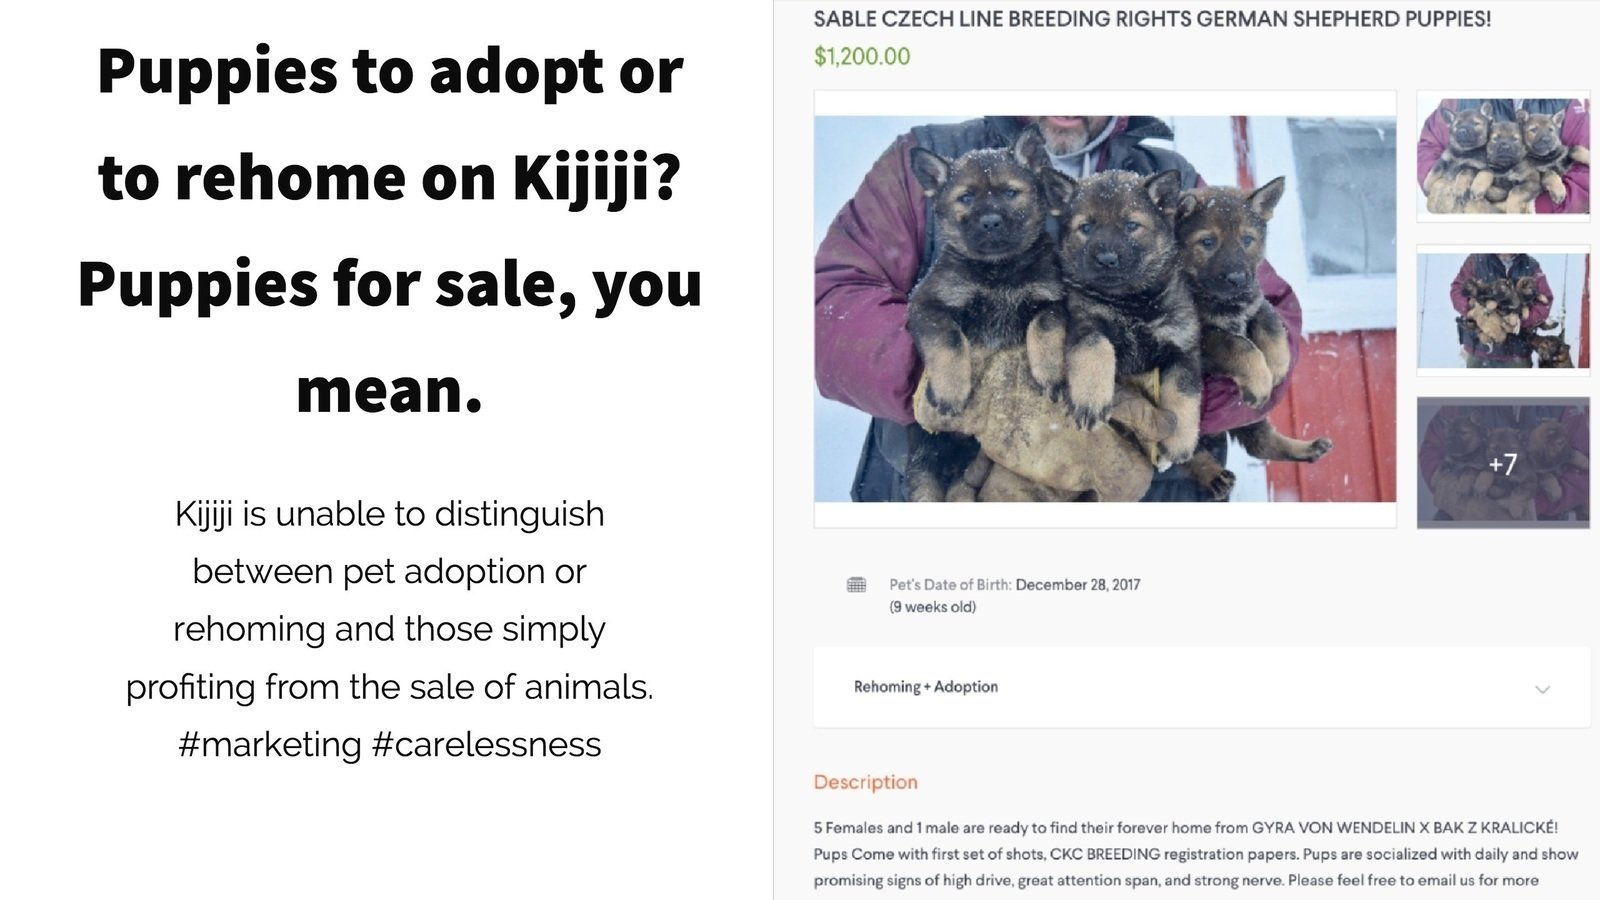 Petition update · Kijiji is an easy platform for scammers to sell